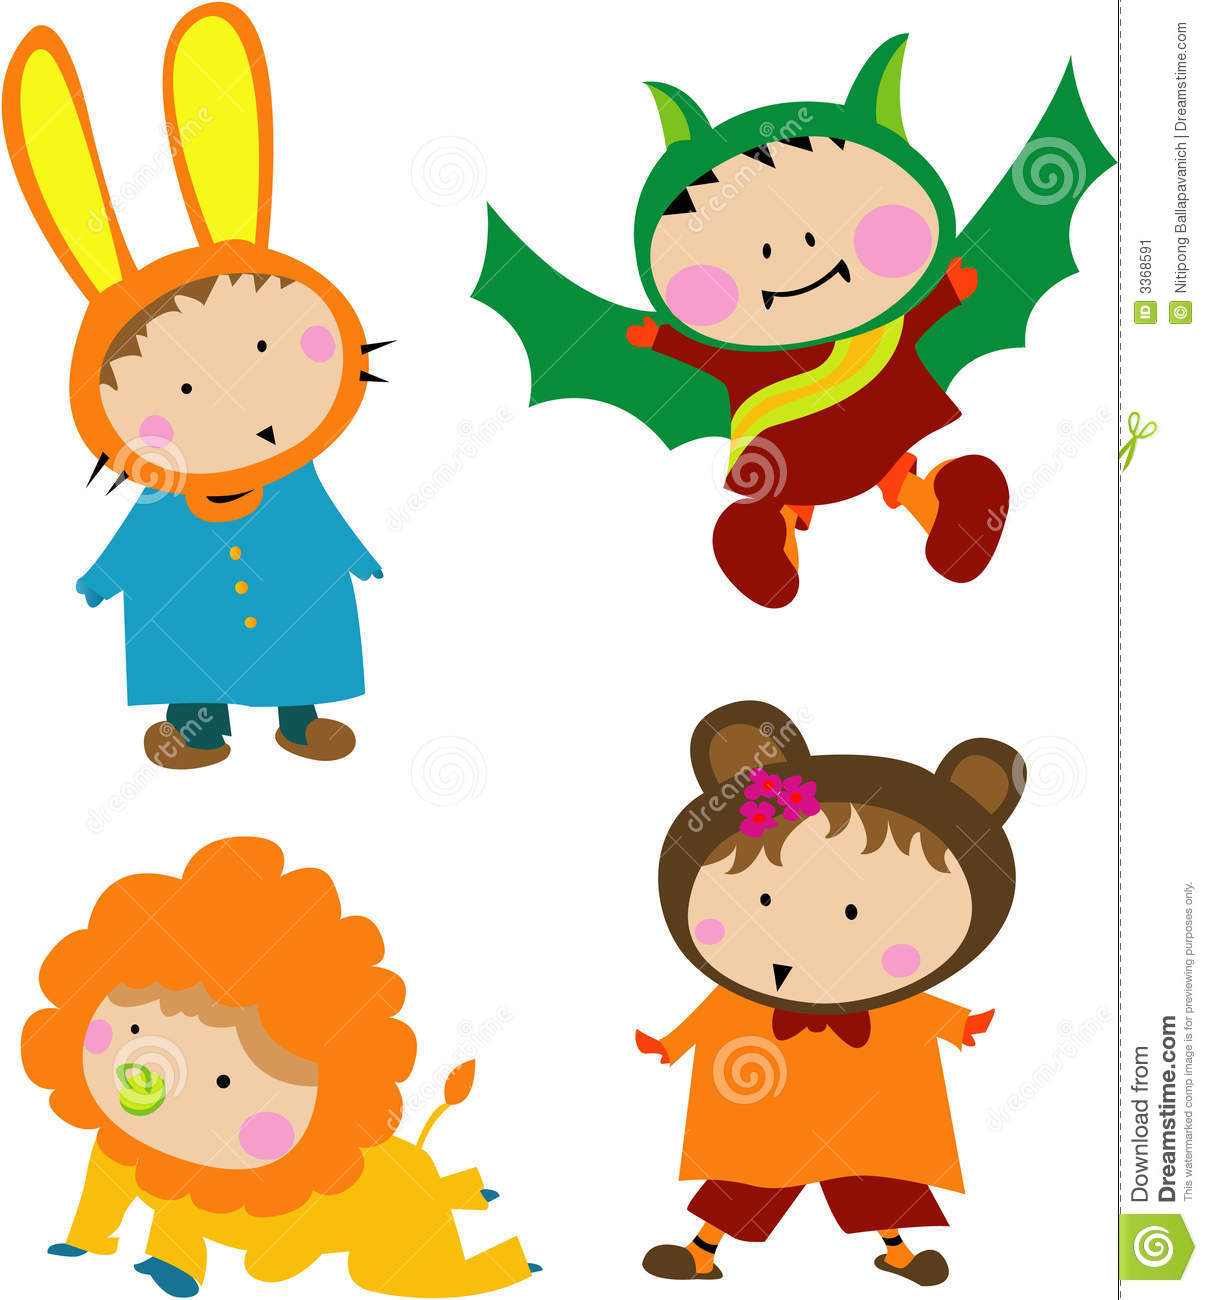 Kids with costumes clipart graphic royalty free stock Kids animal costume clipart - ClipartFest graphic royalty free stock